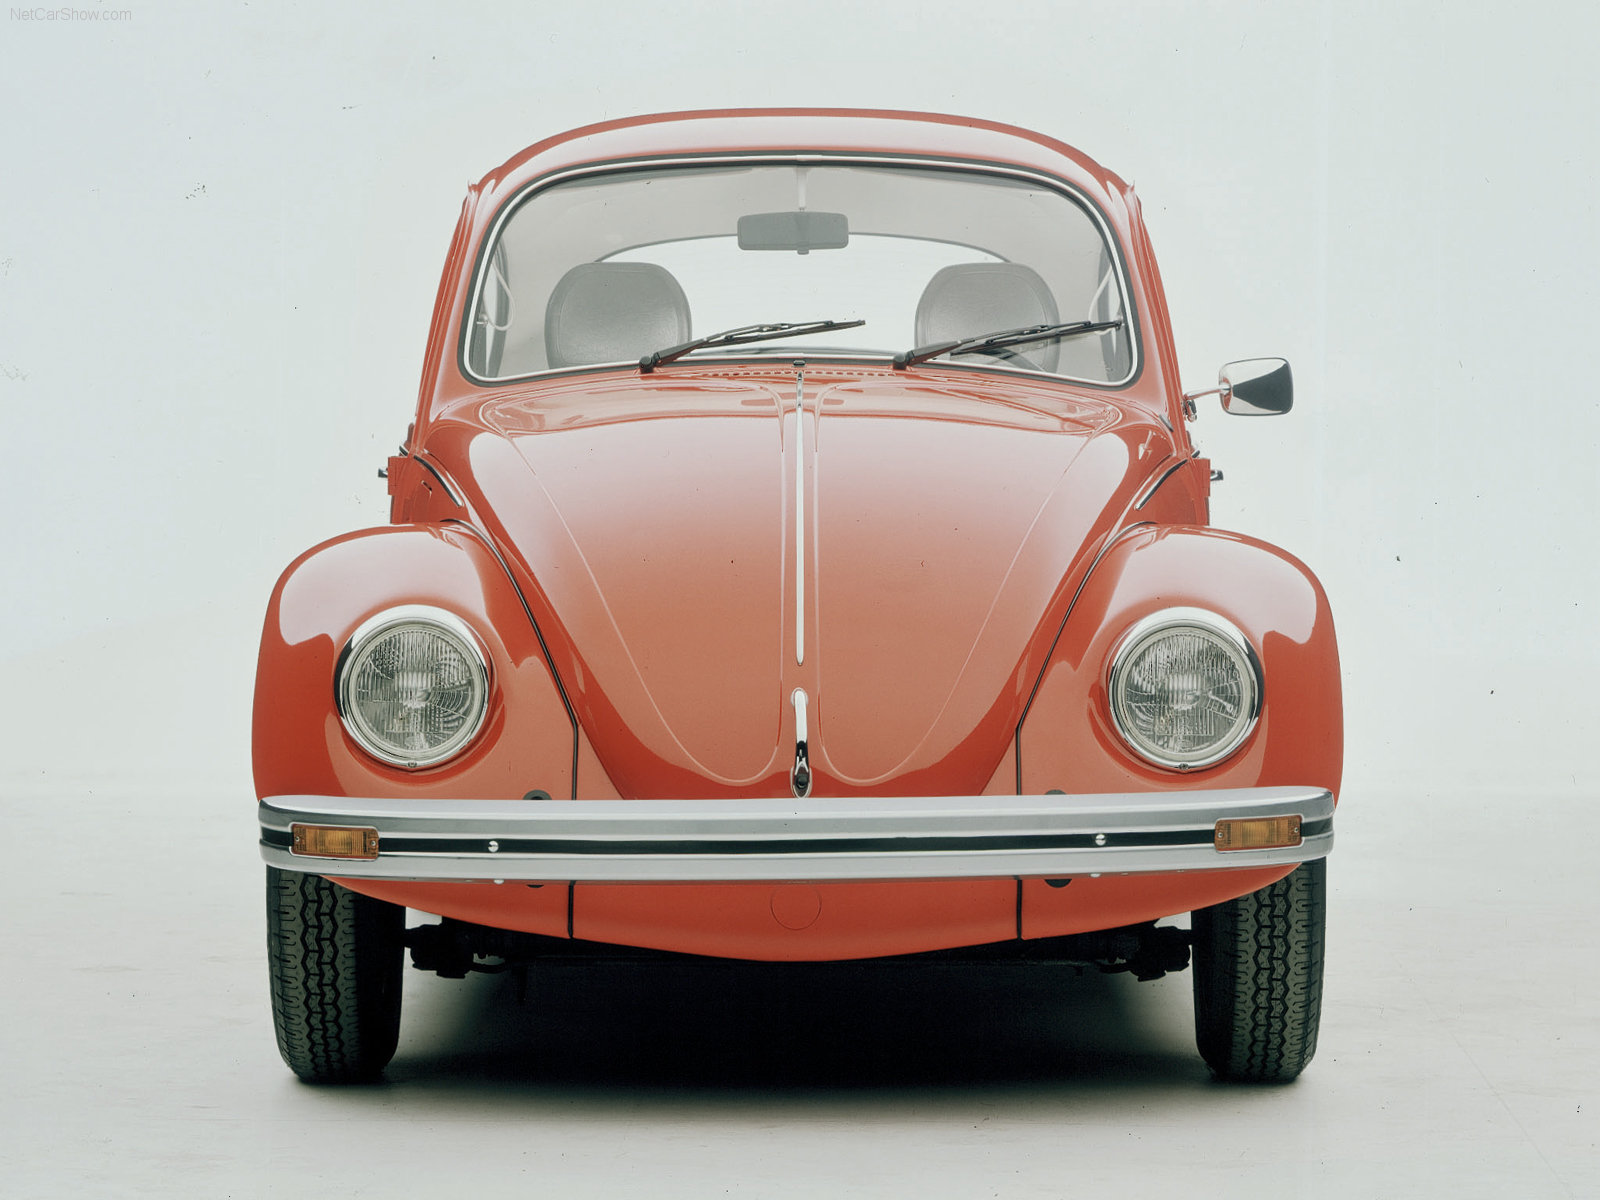 Volkswagen Beetle sedan 1950